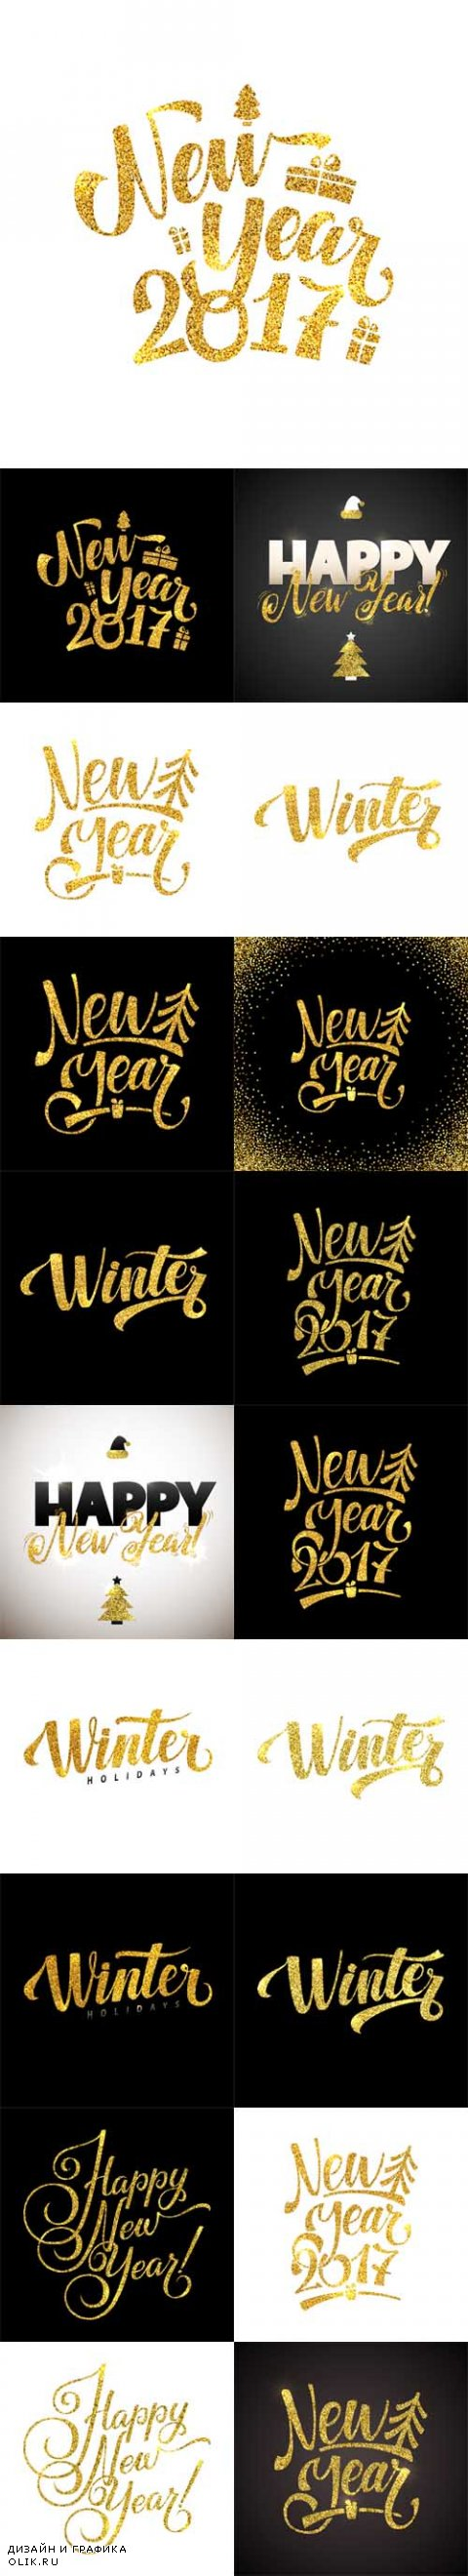 Vector Golden Shiny Glitter. Calligraphy Greeting Poster Tamplate